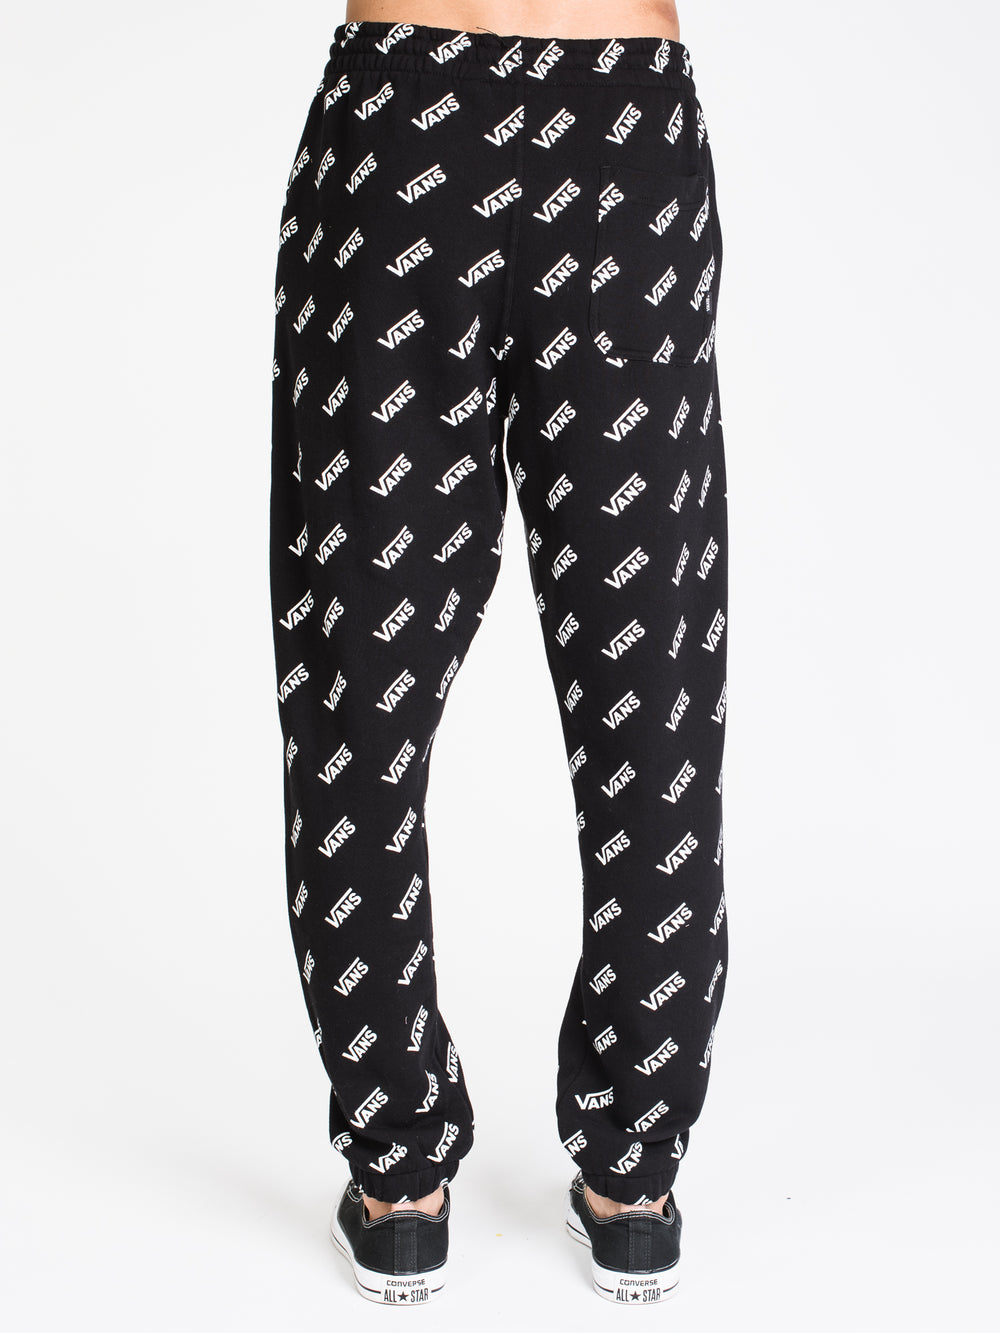 MENS DISTORTED ALL OVER PRINT FLEECE PANT - BLACK